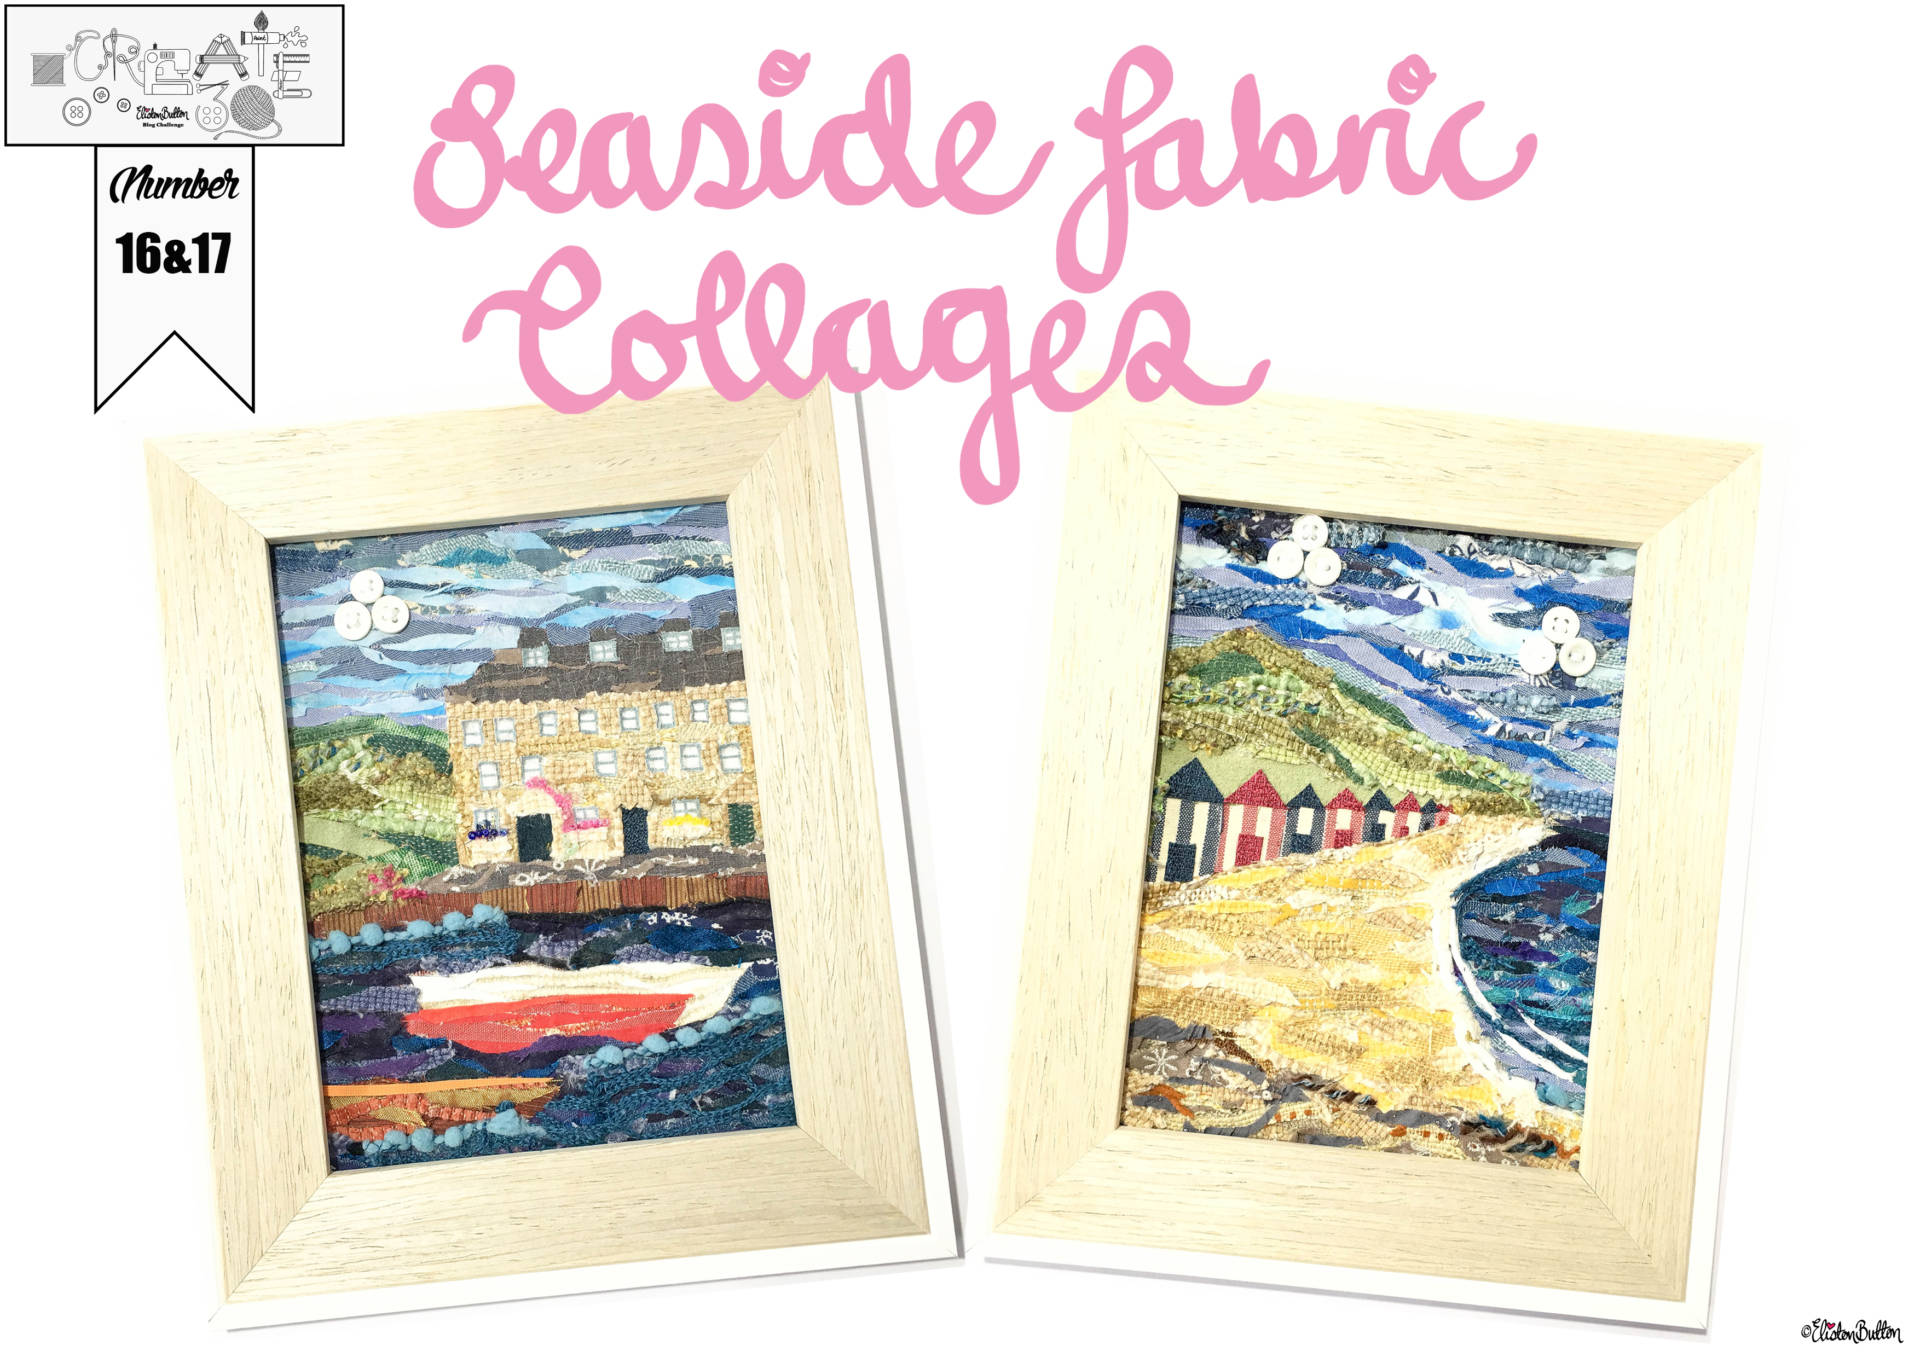 Create 30 - No 16 & 17 - Original Seaside Fabric Collages by Eliston Button on Etsy Title Banner- Create 30 – No. 16 & 17 – Seaside Fabric Collages at www.elistonbutton.com - Eliston Button - That Crafty Kid – Art, Design, Craft & Adventure.